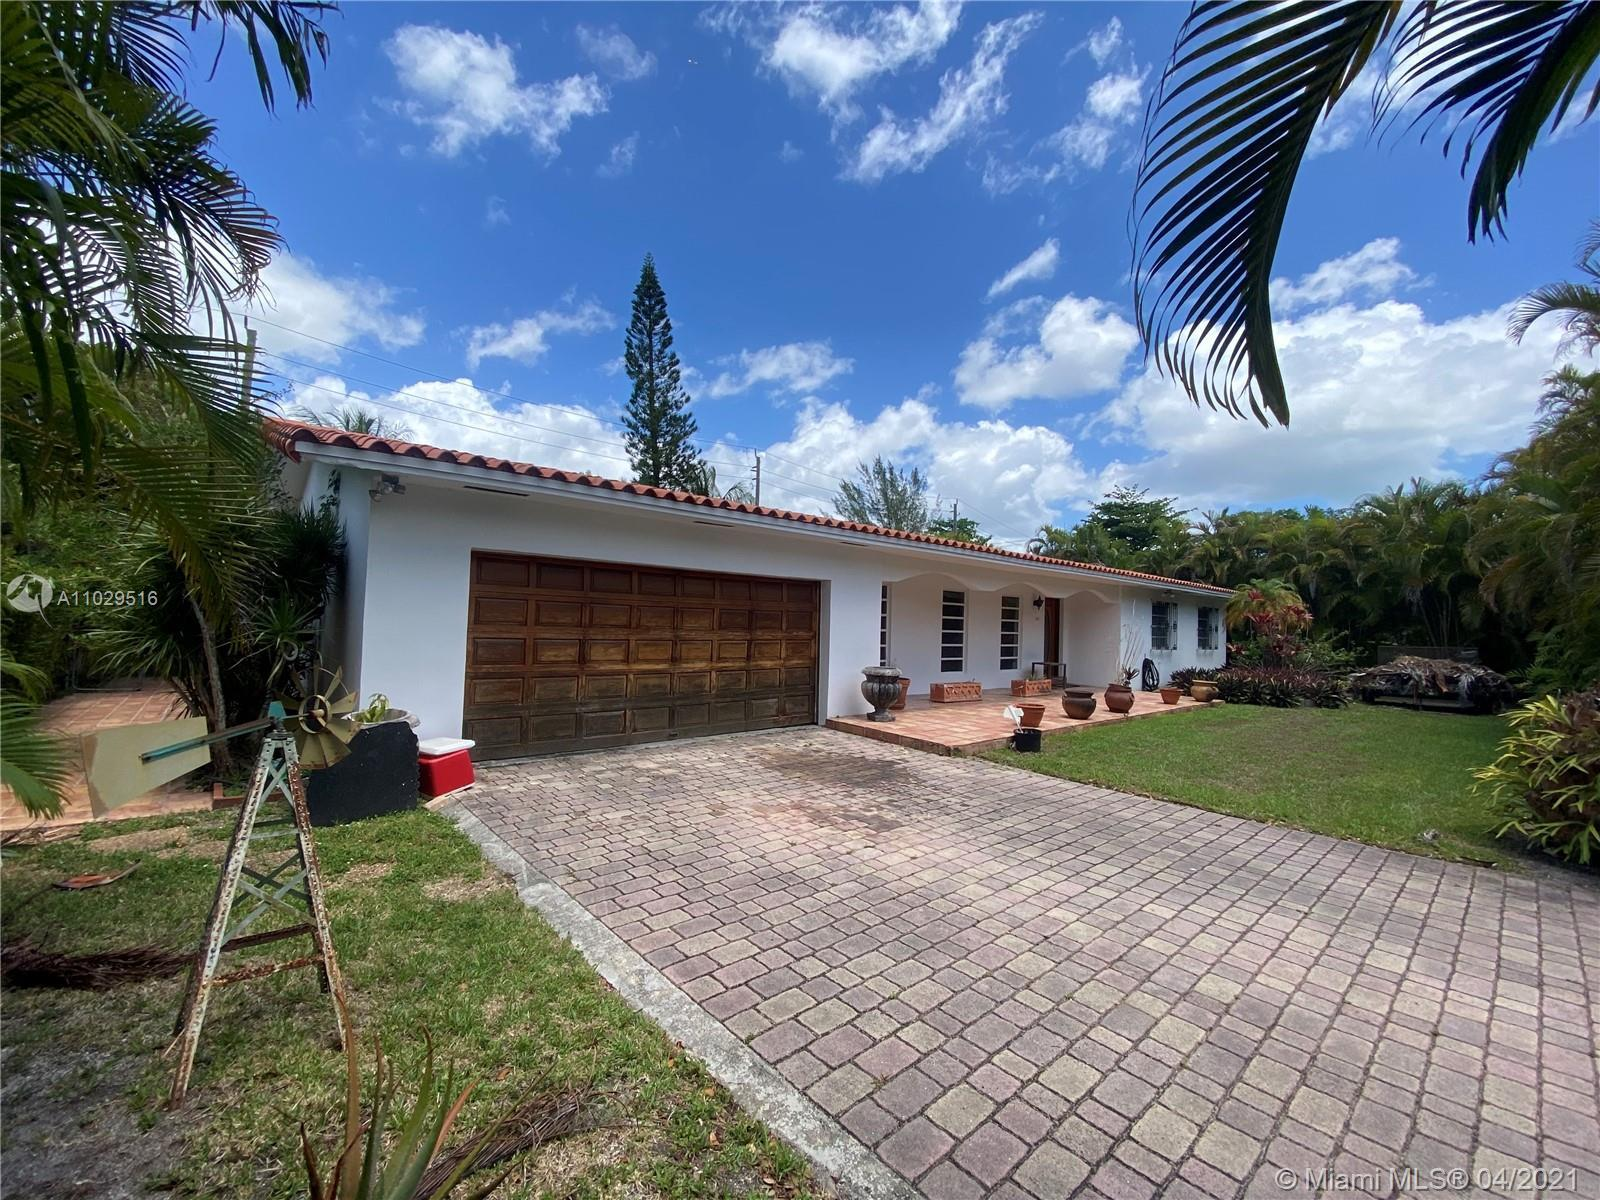 LOCATION, LOCATION, LOCATION!!!!   Lovely home in highly desirable North Pinecrest! Enjoy this spaci